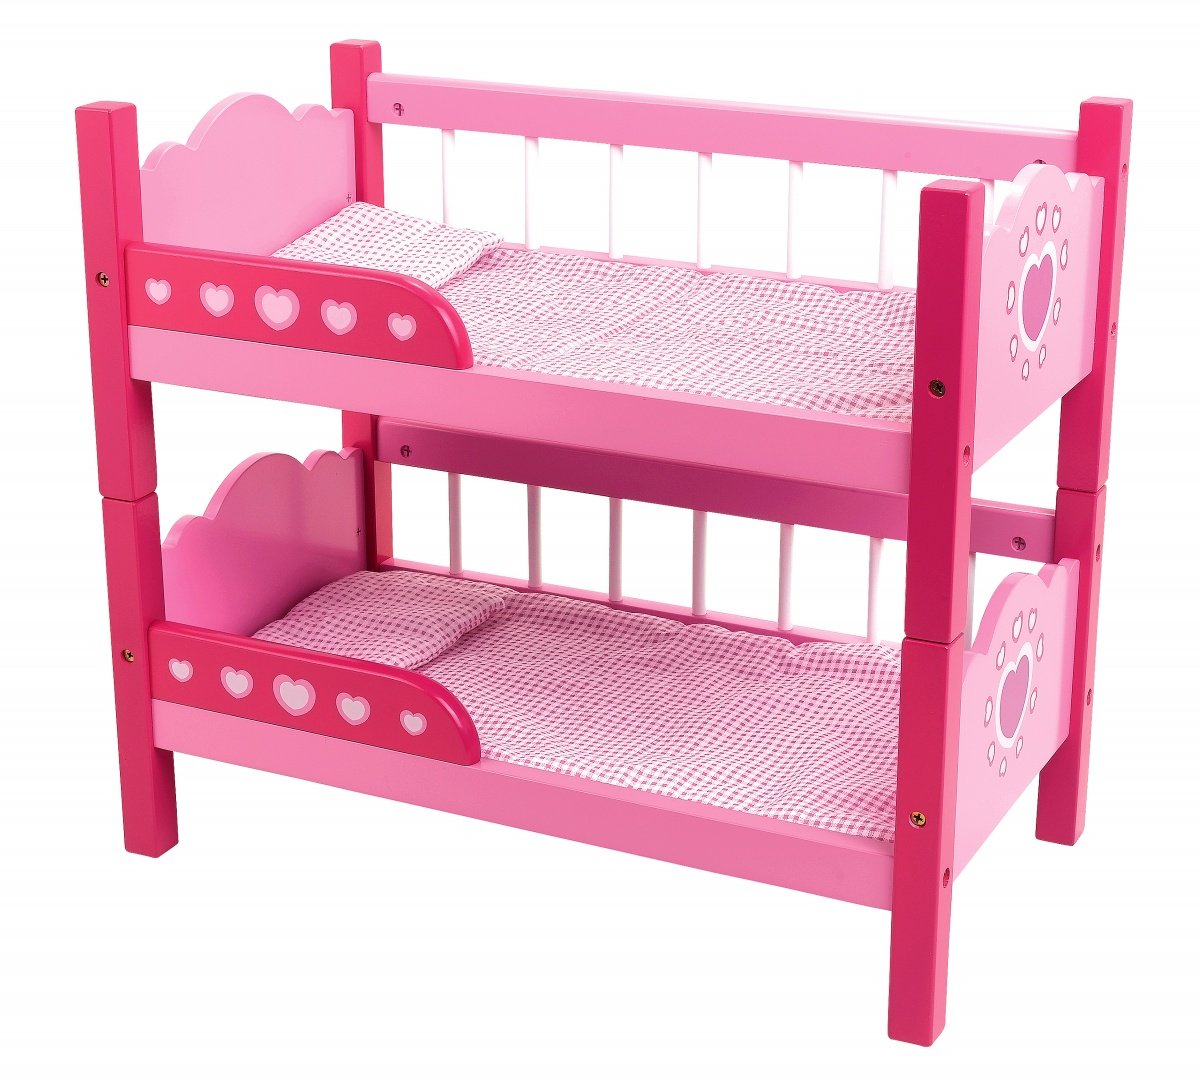 dolls dp toys com basket american beds doll girl games badger hrmdersl amazon ladder fits bunk with bed